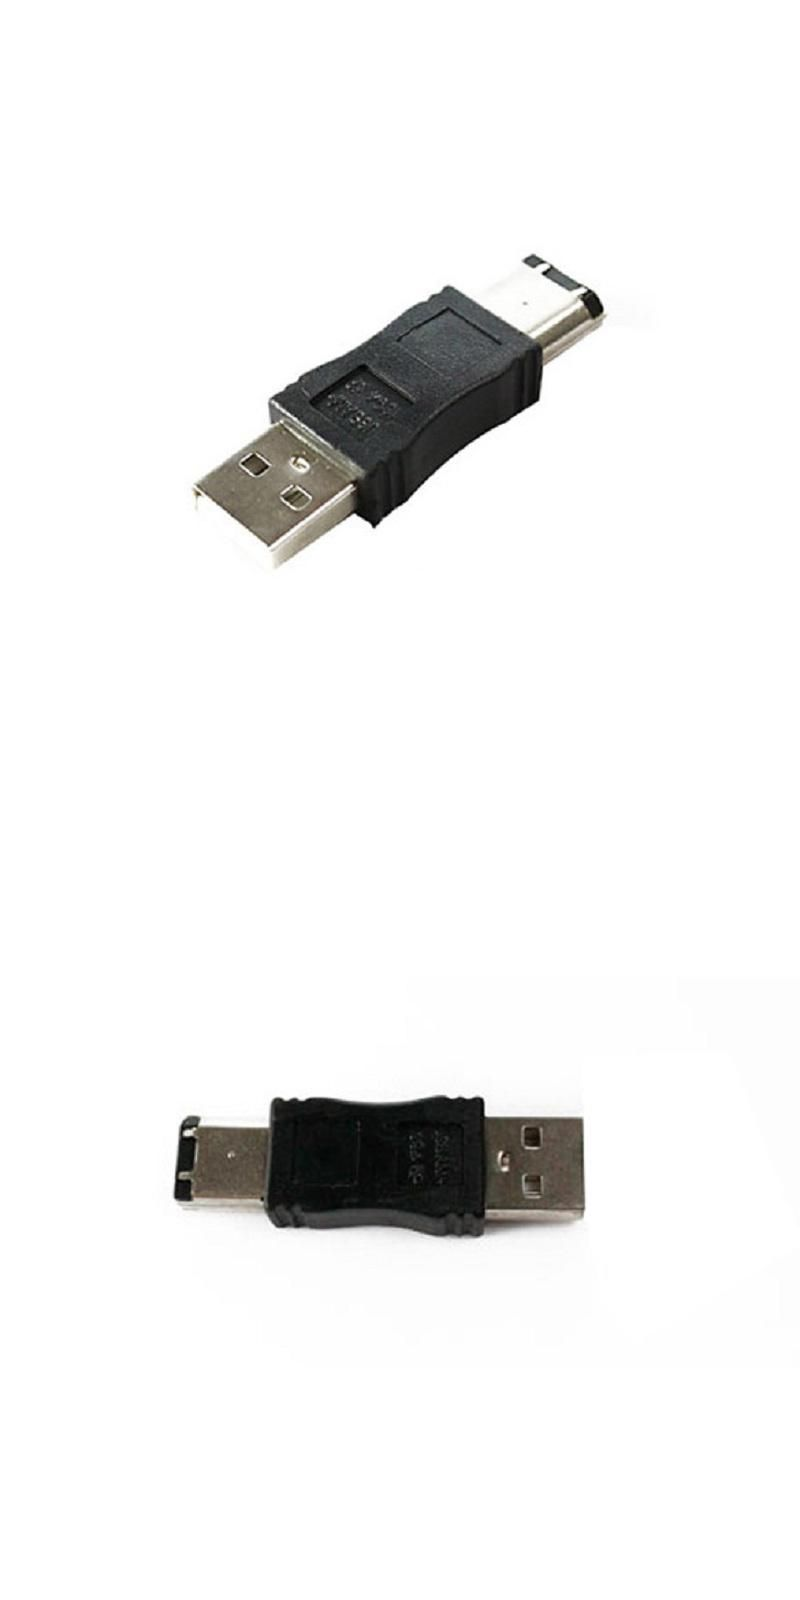 visit to buy un2f firewire ieee 1394 6p to usb a male adaptor convertor [ 800 x 1600 Pixel ]